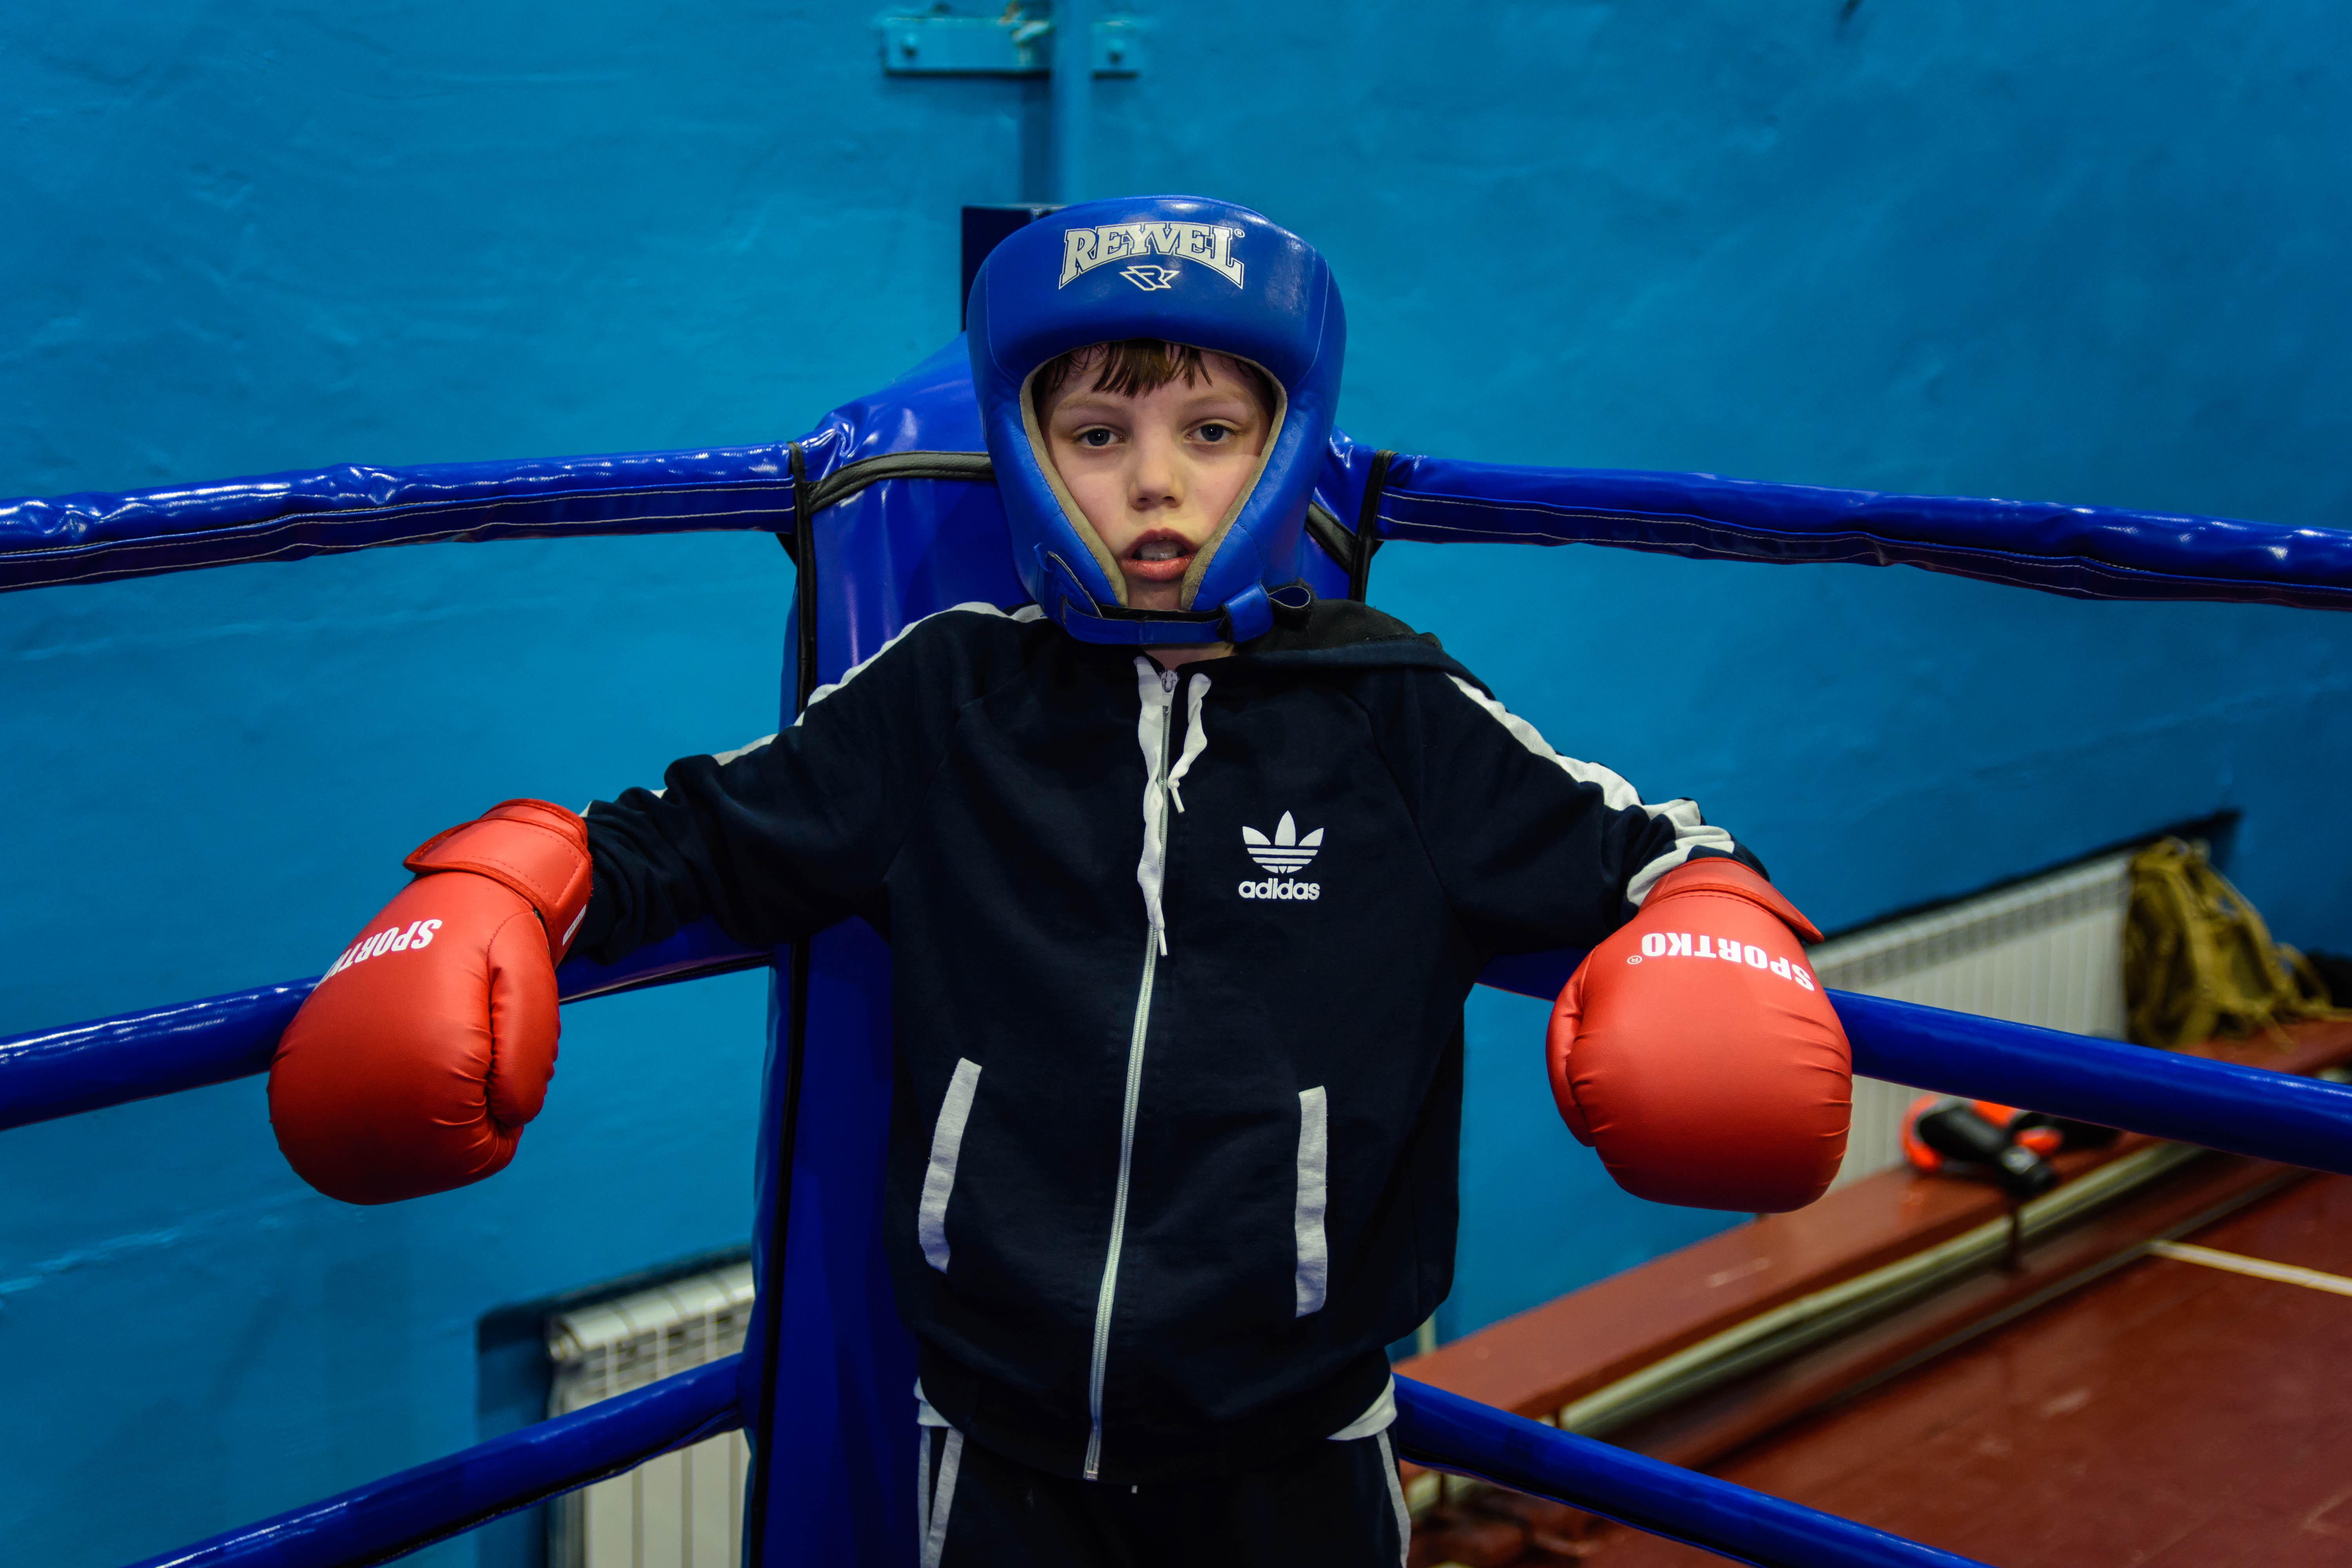 Lehor from Eastern Ukraine uses boxing to heal the wounds of war.